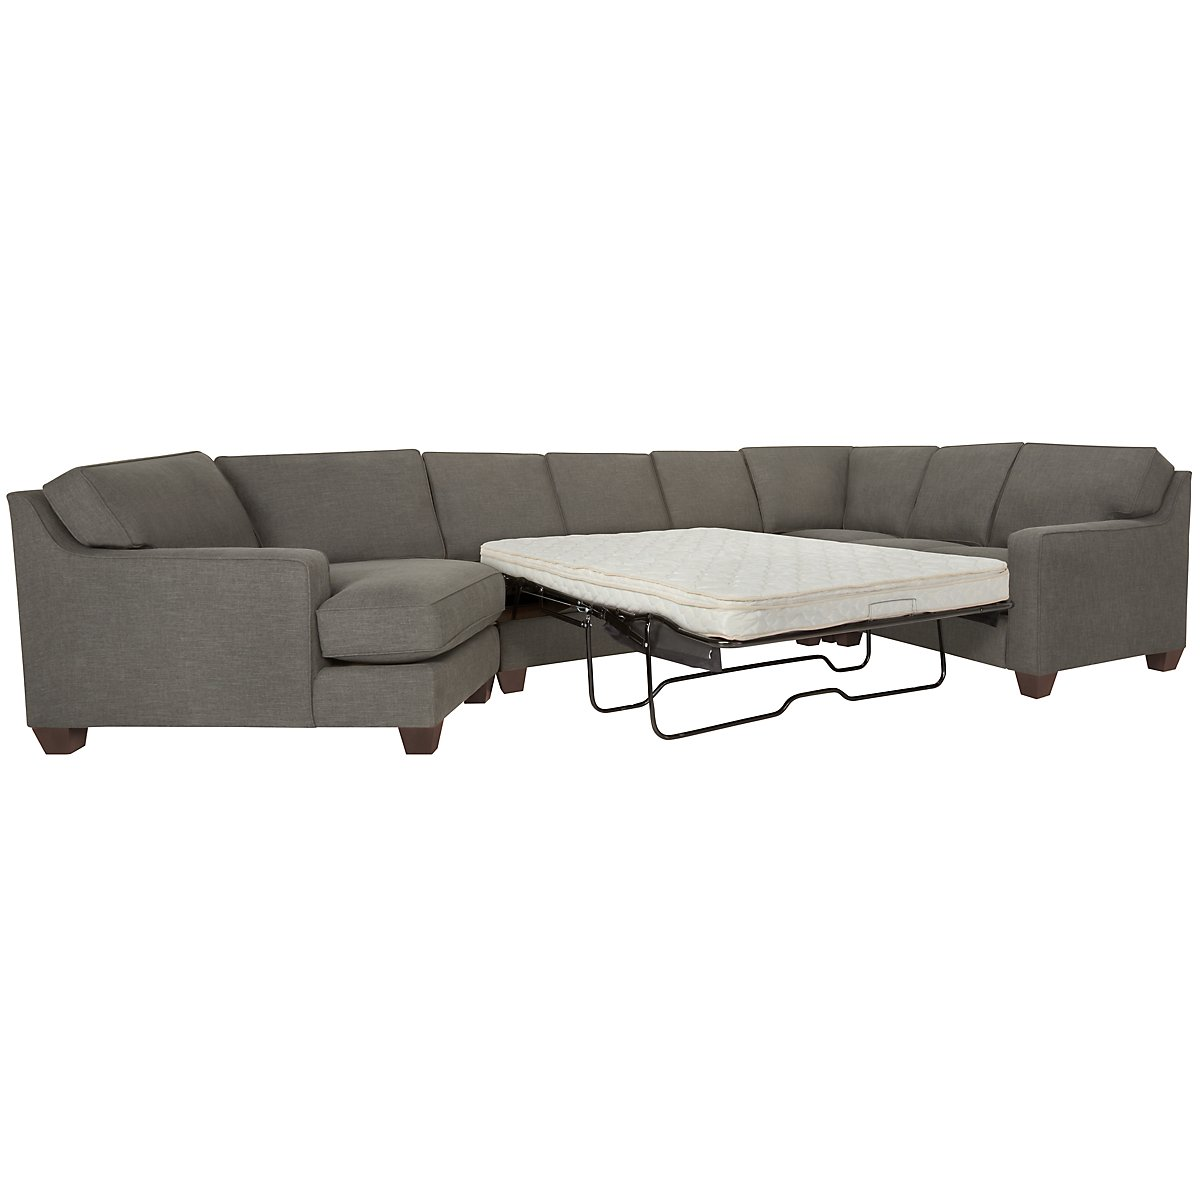 York Dark Gray Fabric Small Left Cuddler Innerspring Sleeper Sectional